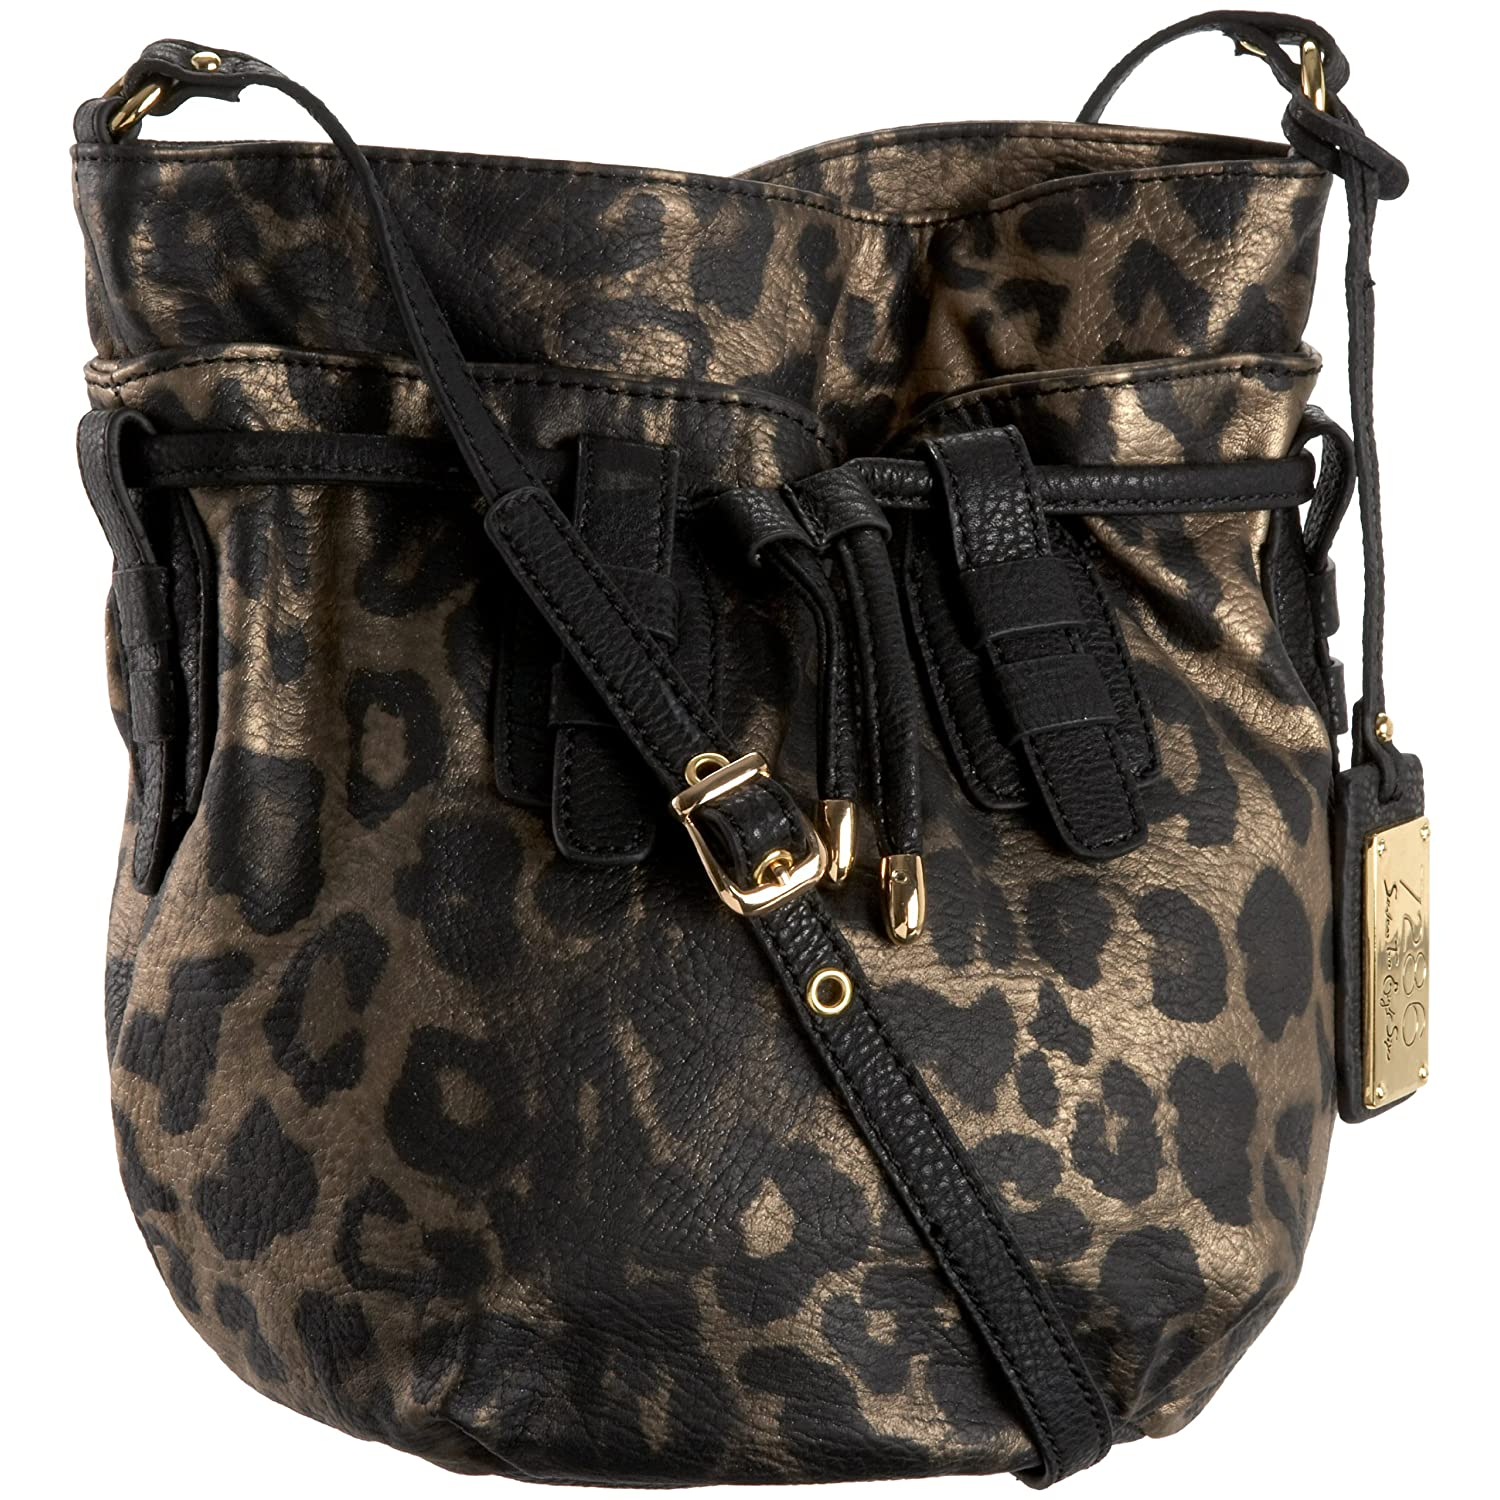 7286 by Lindsay Lohan - Ami Cross-Body :  cross body bag purse animal print bag animal print